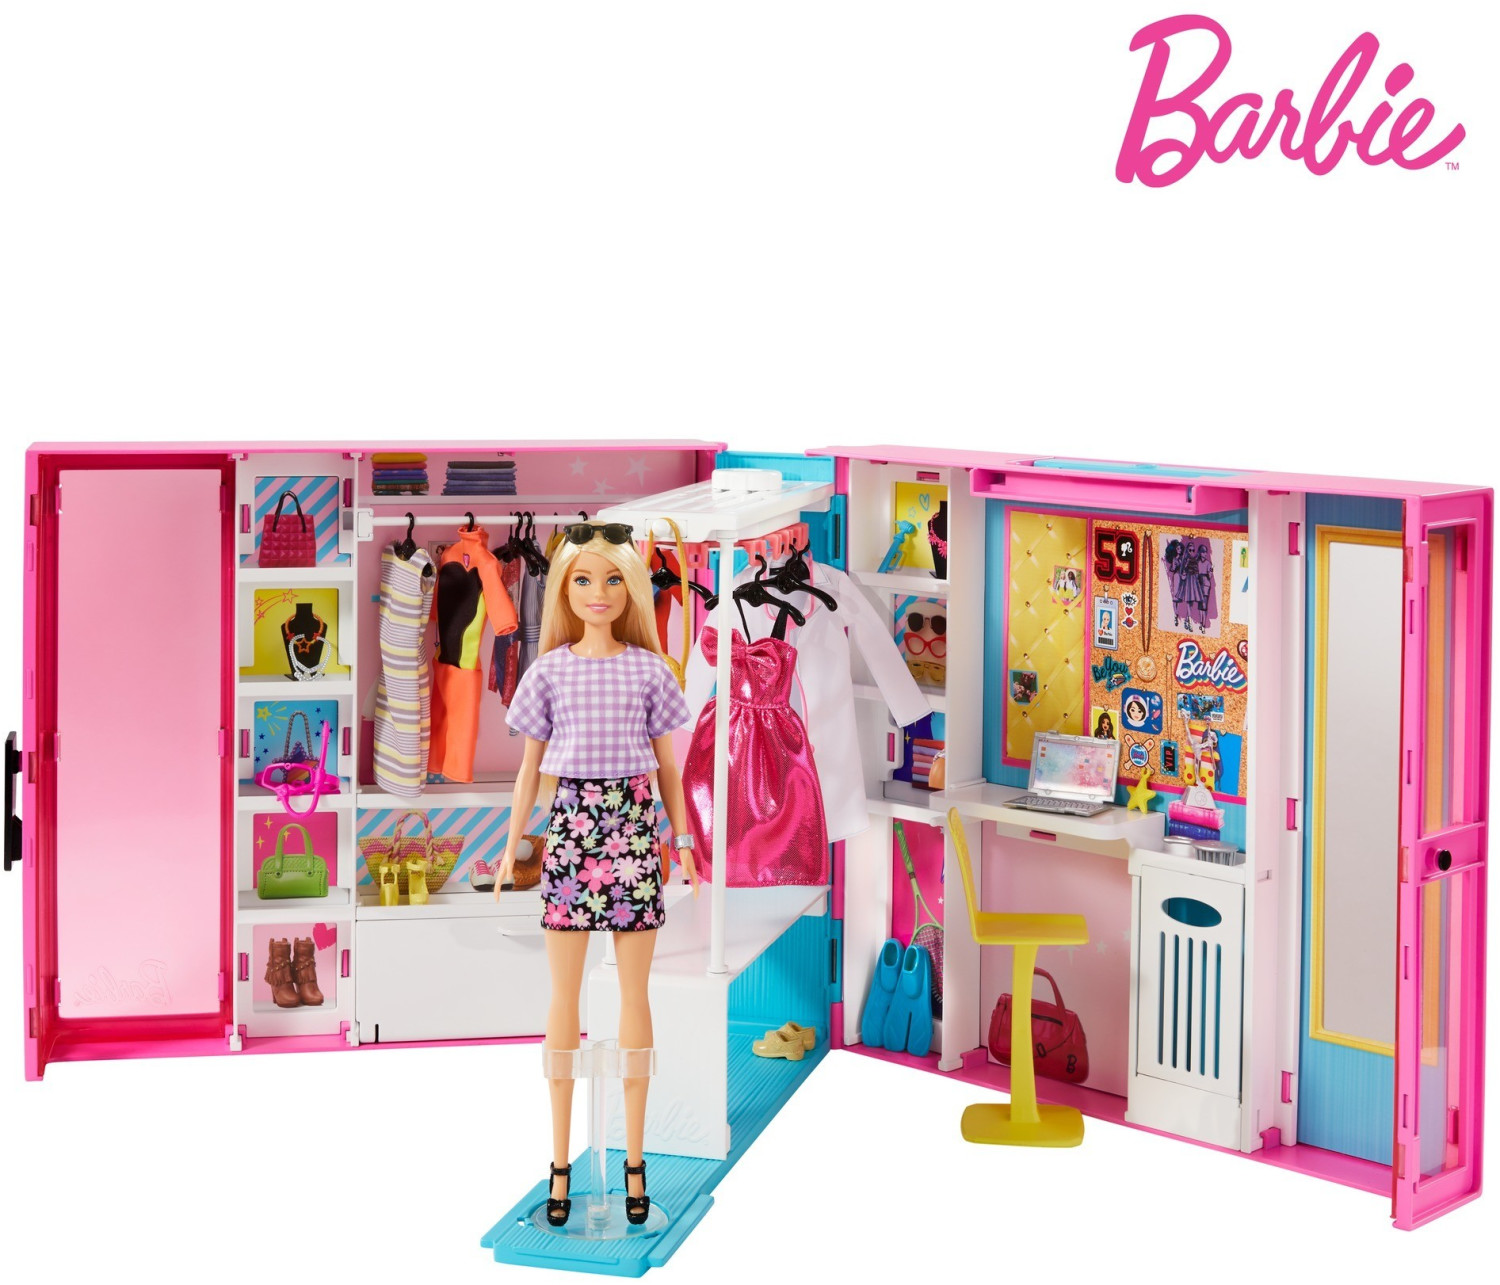 Image of Mattel Barbie's Dream Wardrobe with Barbie Doll, Accessories and Clothes